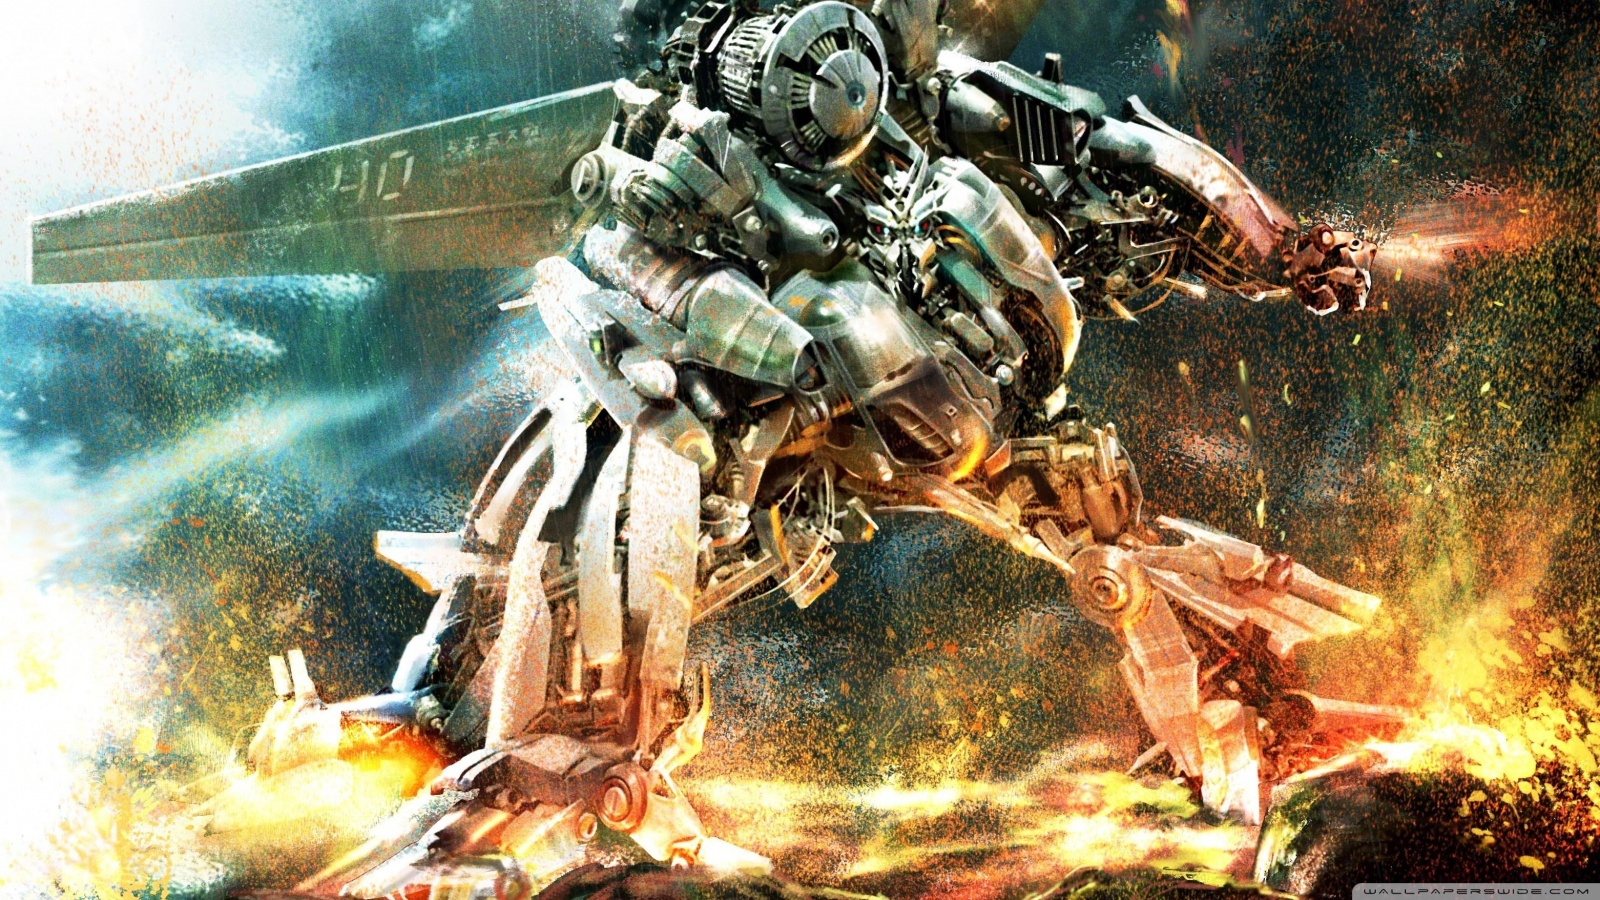 transformers 4  age of extinction  2014  wallpapers